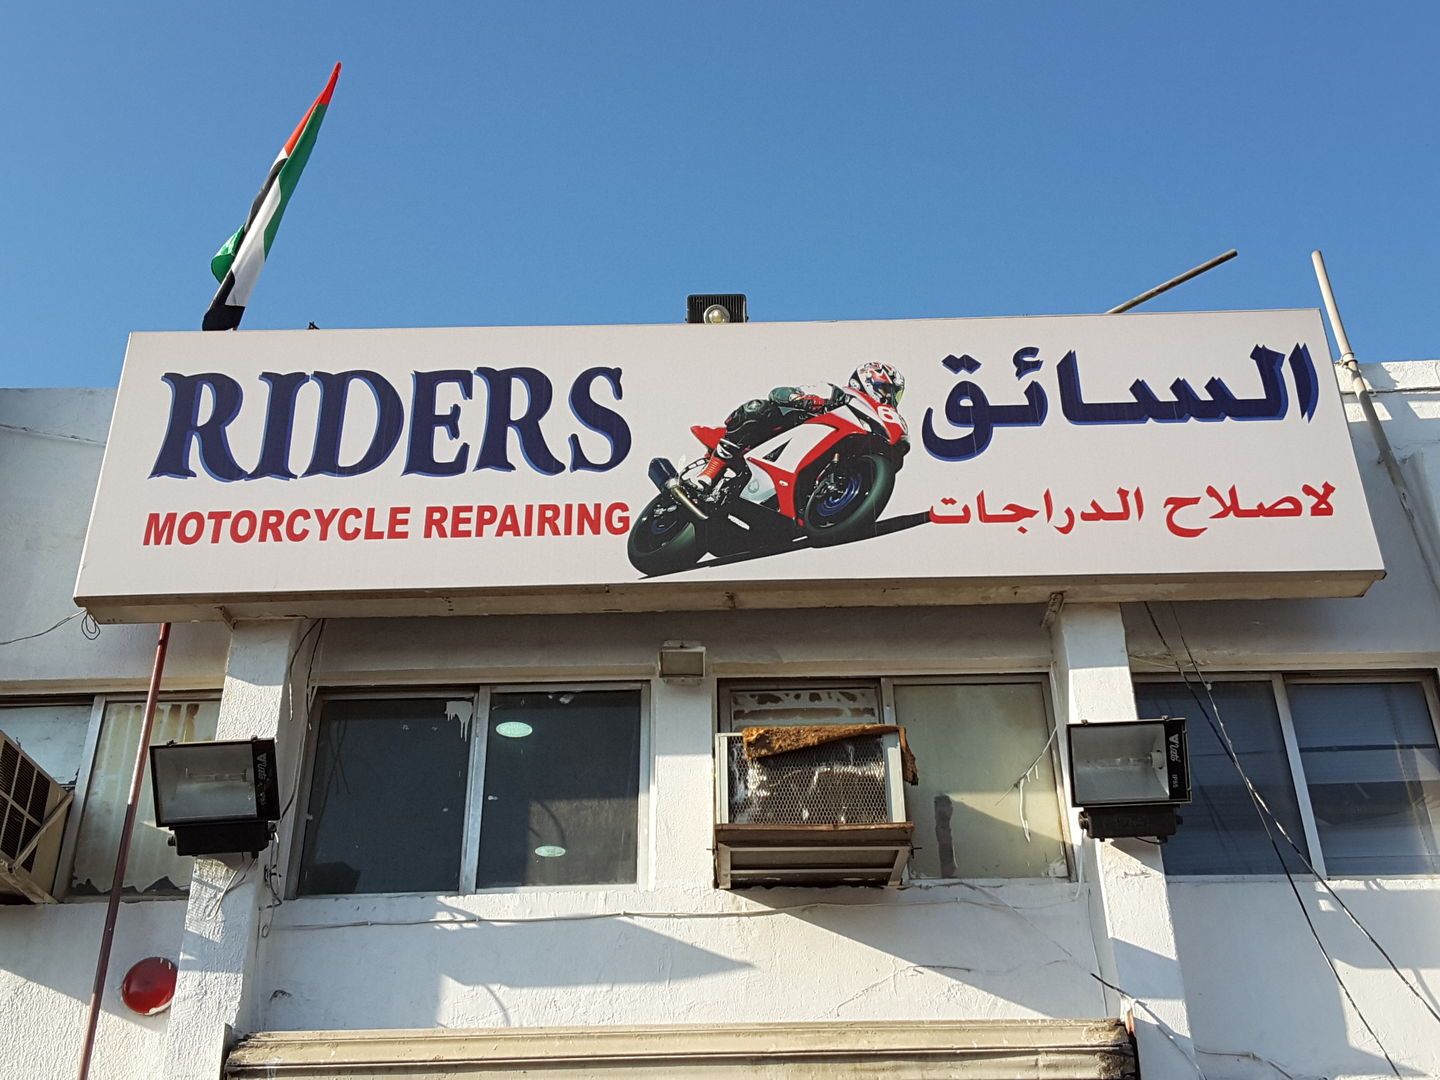 HiDubai-business-riders-motorcycle-repairing-transport-vehicle-services-motorycle-service-repair-al-khabaisi-dubai-2